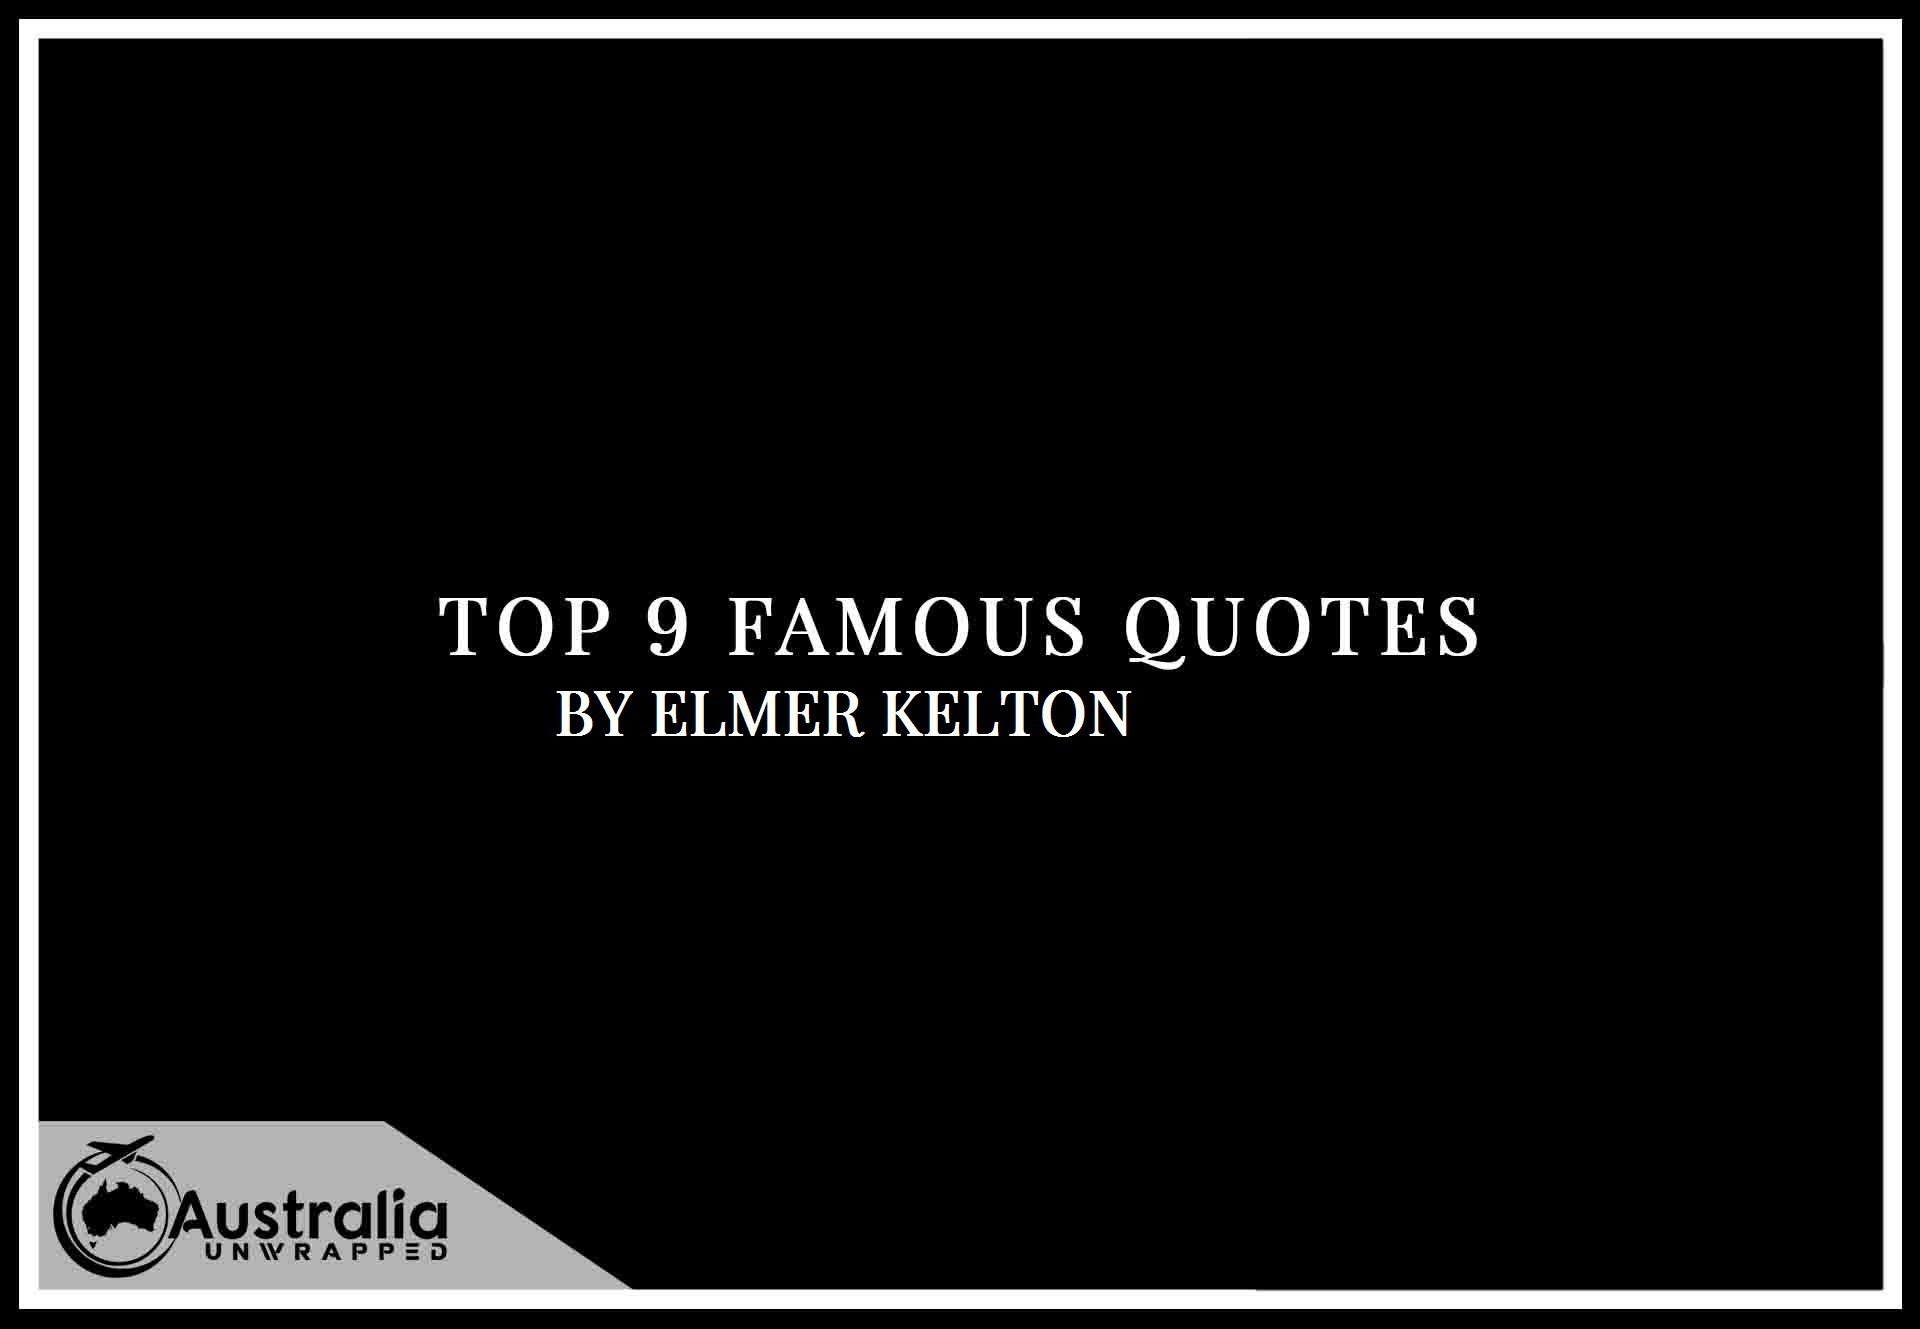 Elmer Kelton's Top 9 Popular and Famous Quotes